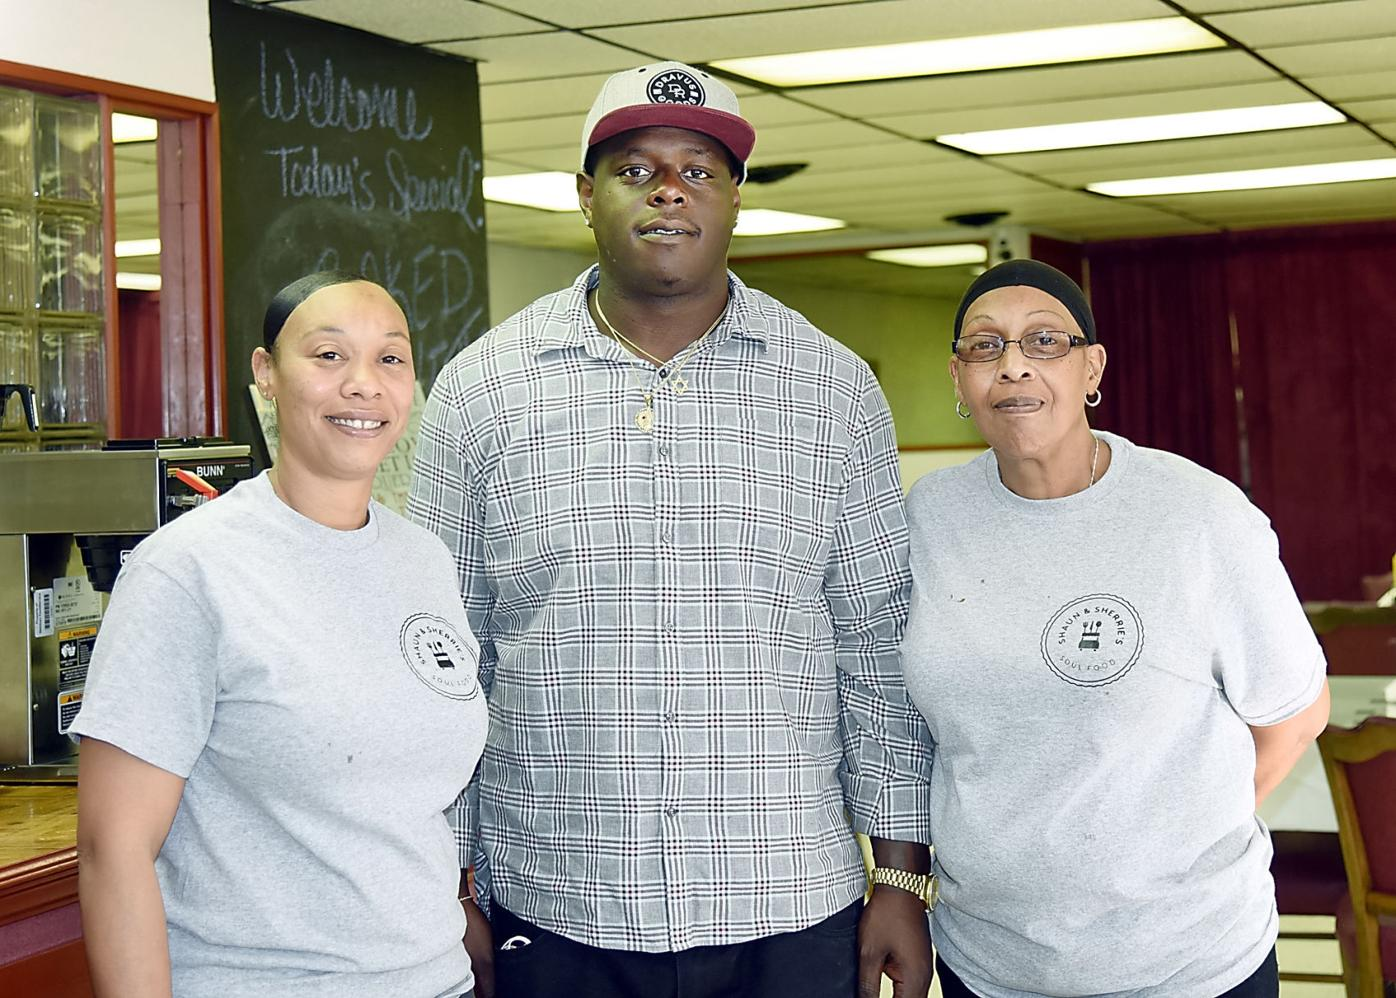 Shaun and Sherrie's Soul Food